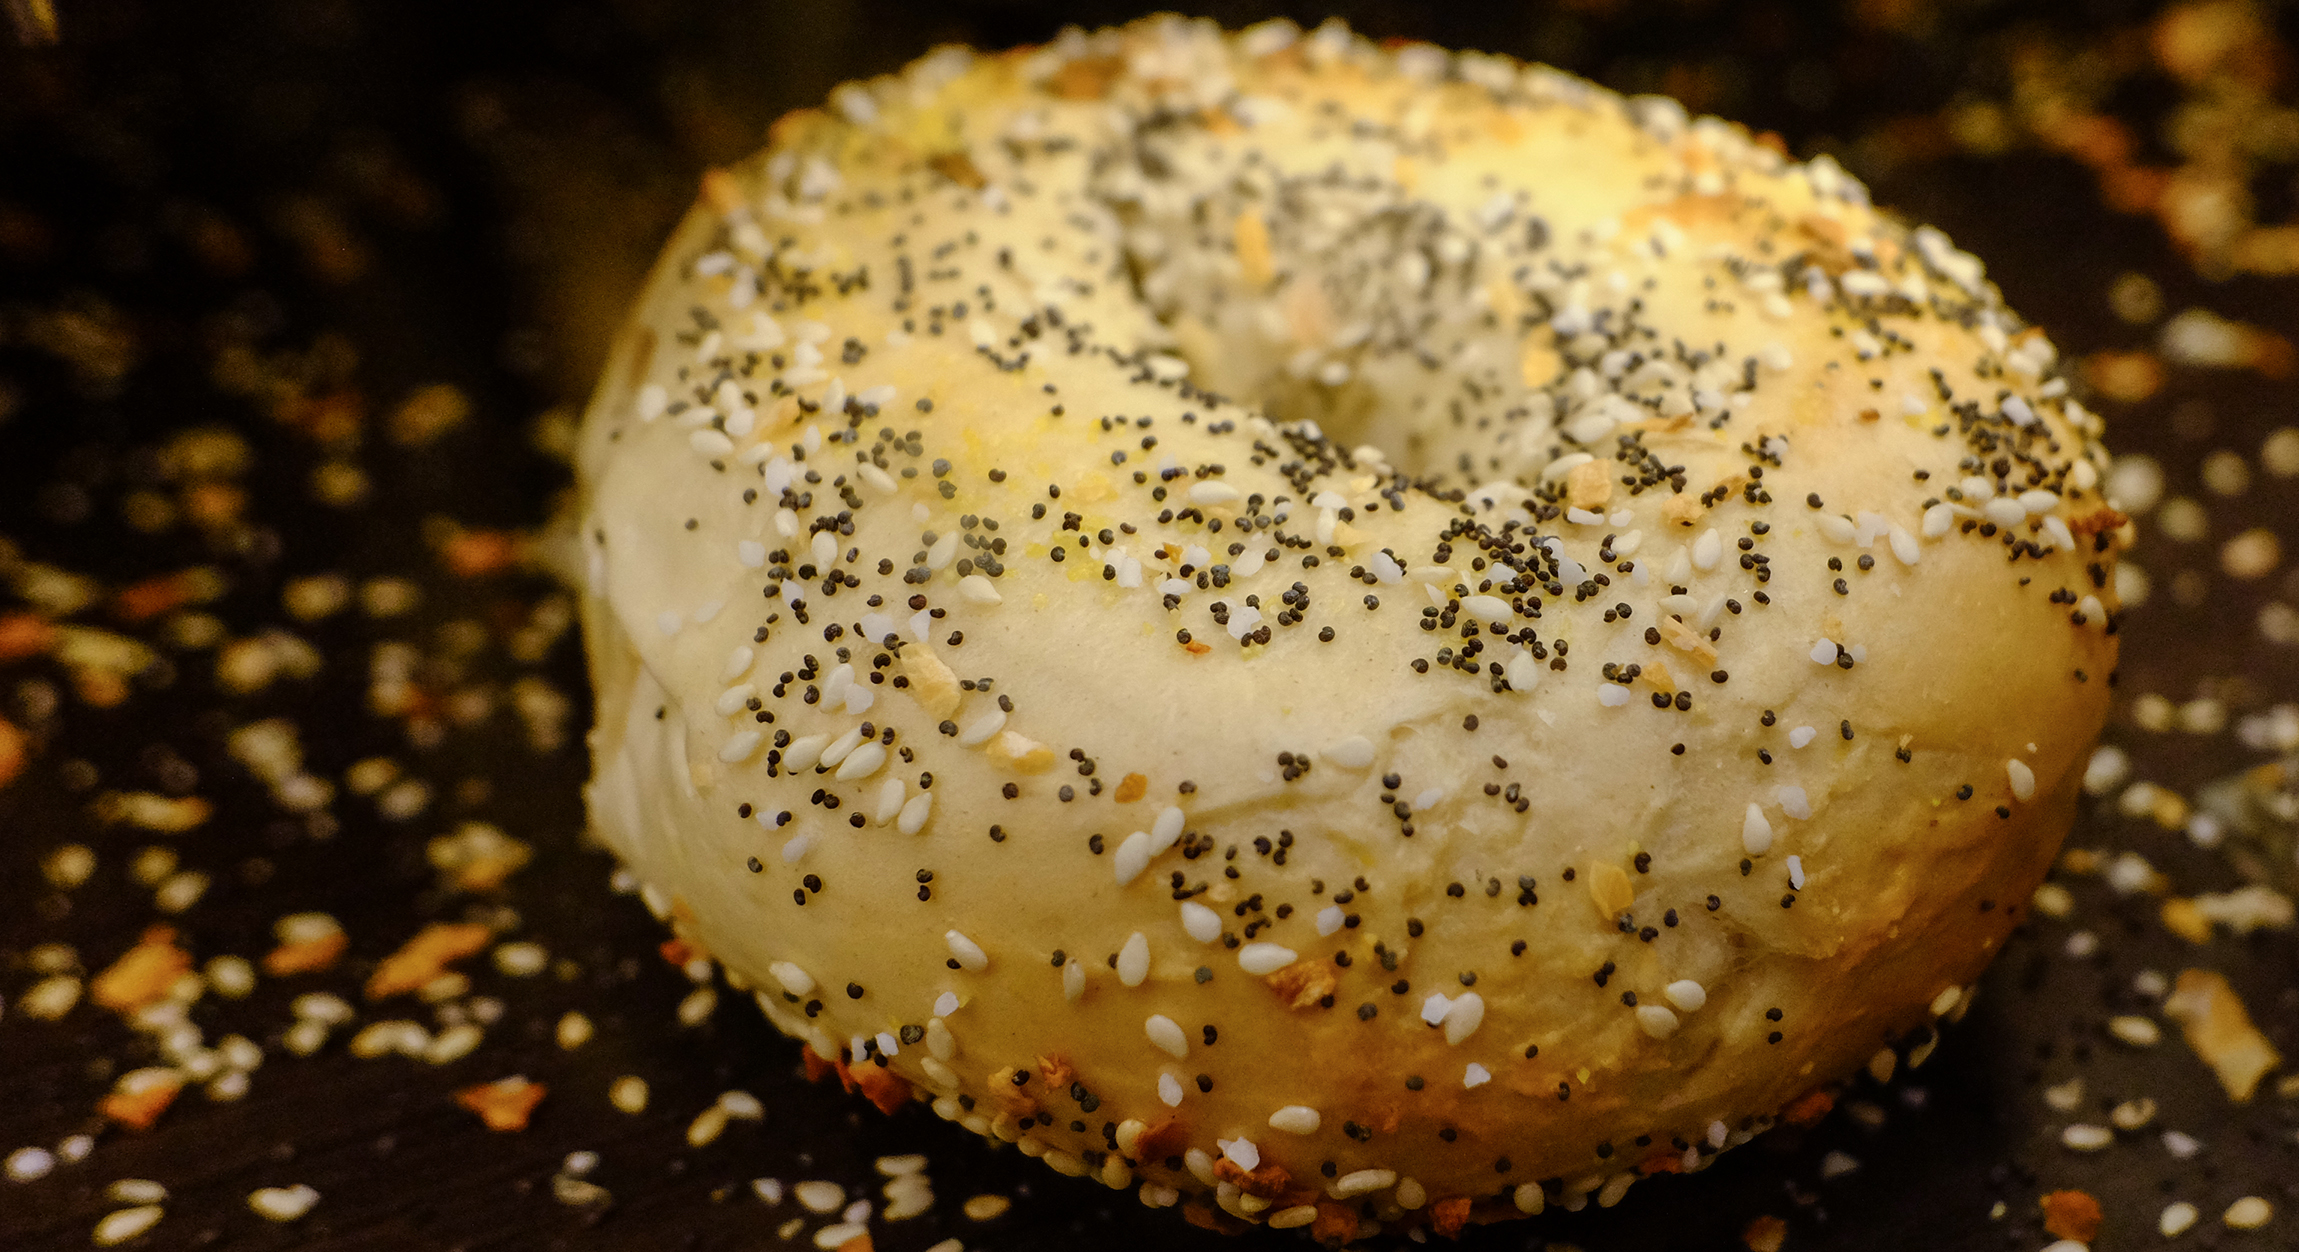 An everything bagel, boiled then baked at 500 degrees.